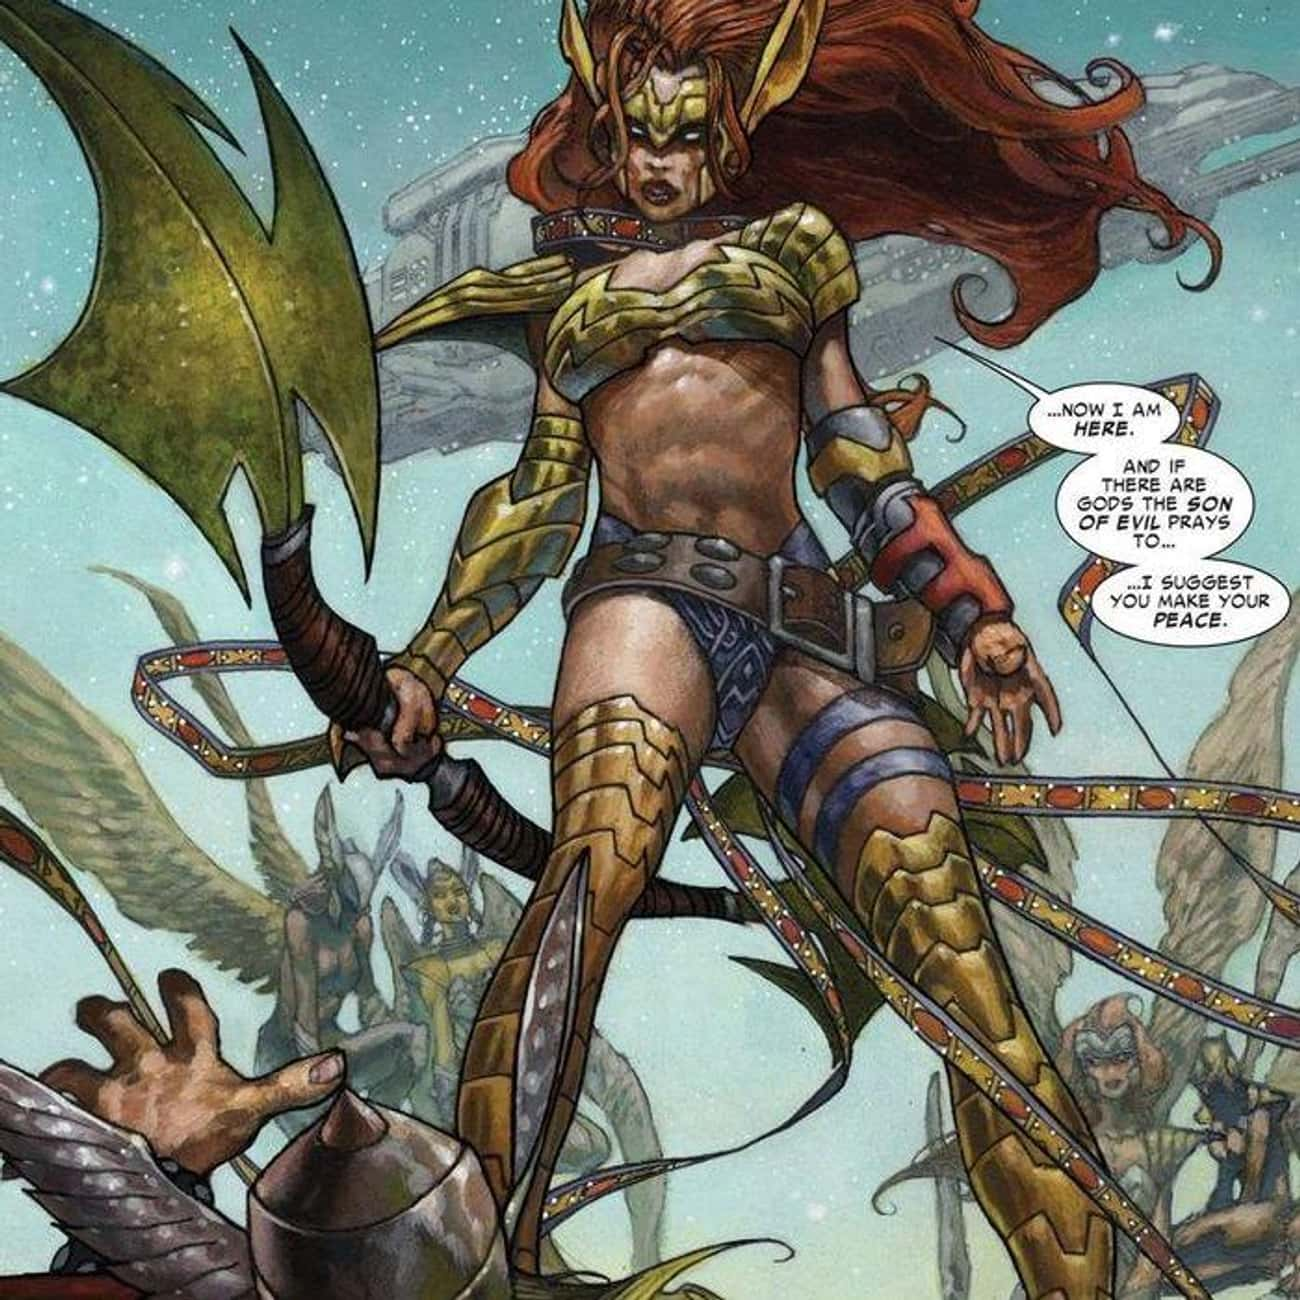 Angela, From Spawn, Turned Out is listed (or ranked) 2 on the list Why Thor's Comic Book Life Has Become Unrecognizable Over the Past Five Years